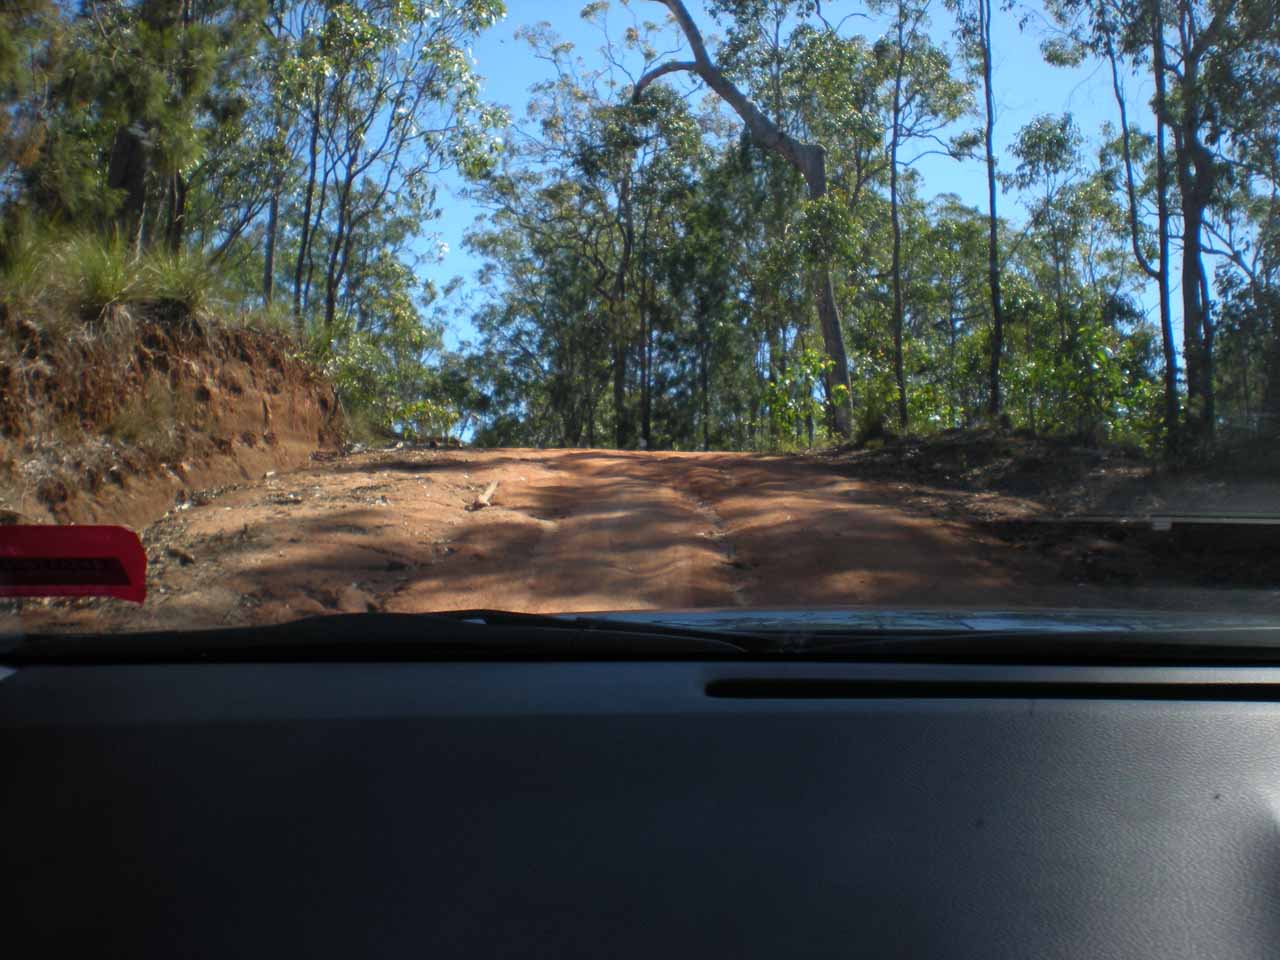 This was the hill in the final rough 5.2km stretch that ultimately damaged the underside of our rental car